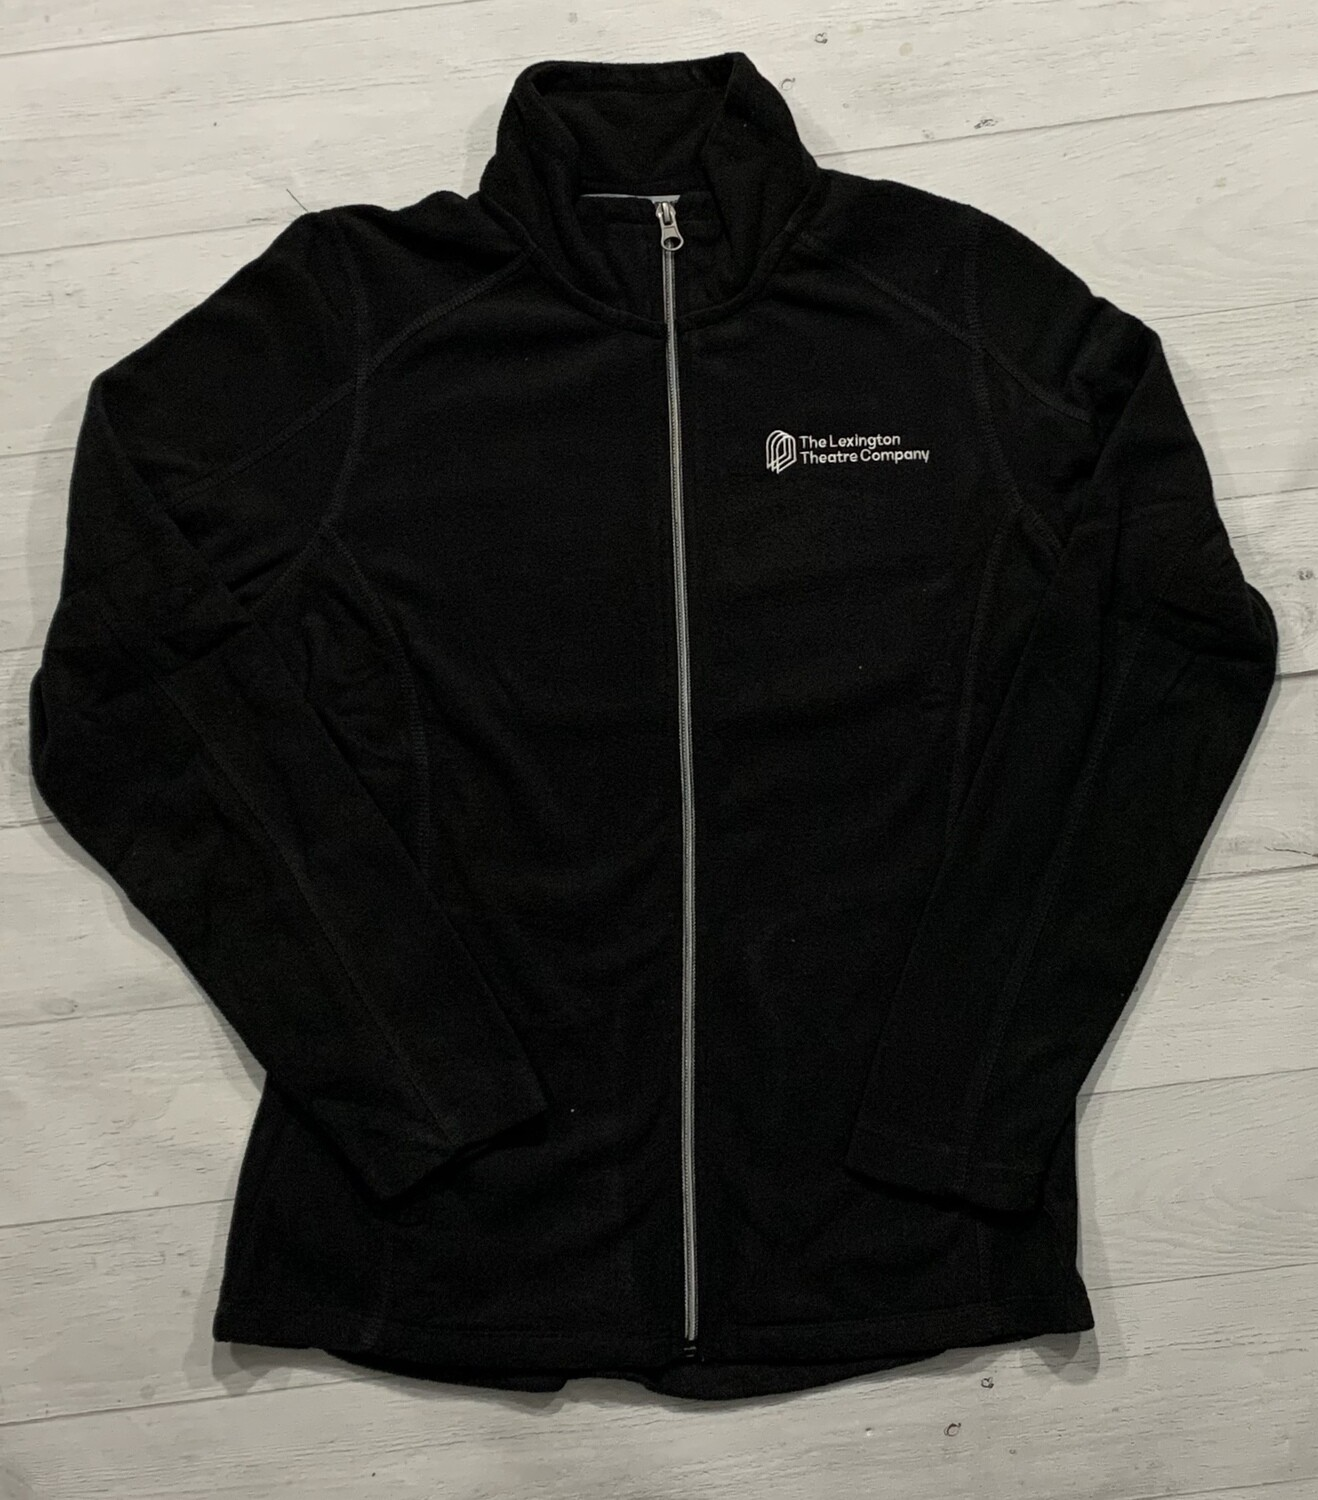 Unisex Port Authority® Black Microfleece Jacket (LTC)